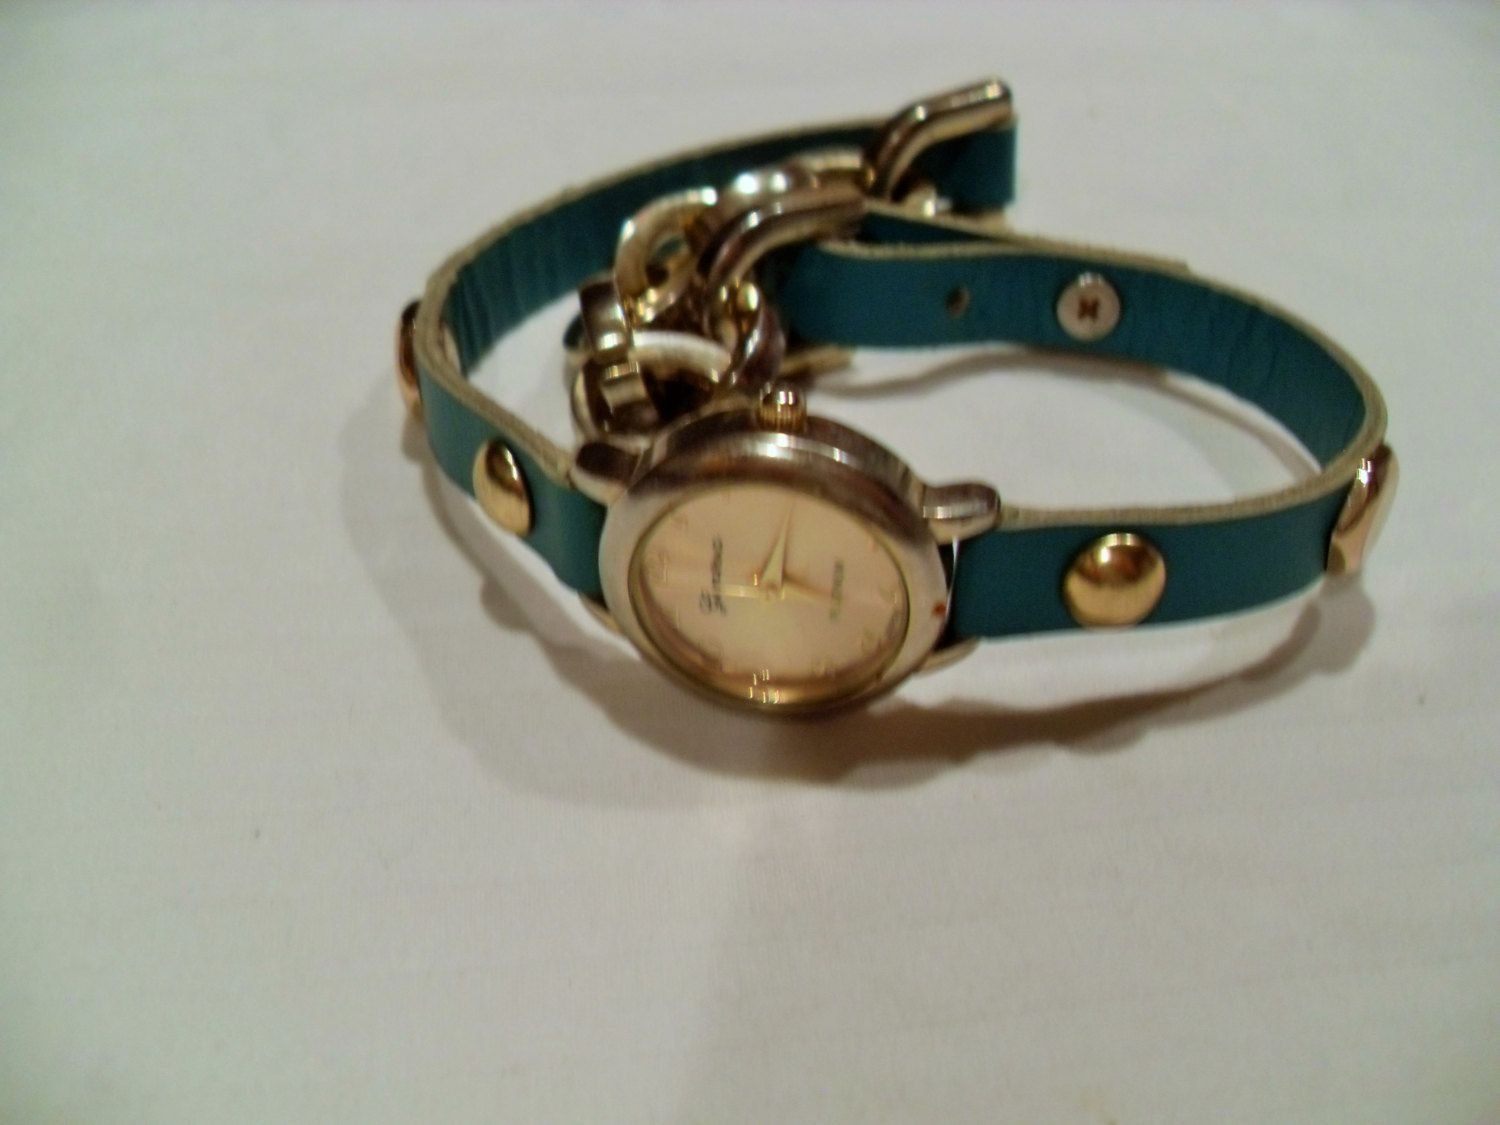 Ladies Geneva watch, double wrap, blue leather and gold tone chain, works great, gift for teen, ladies wrist watch, Gingerslittlegems by GingersLittleGems on Etsy